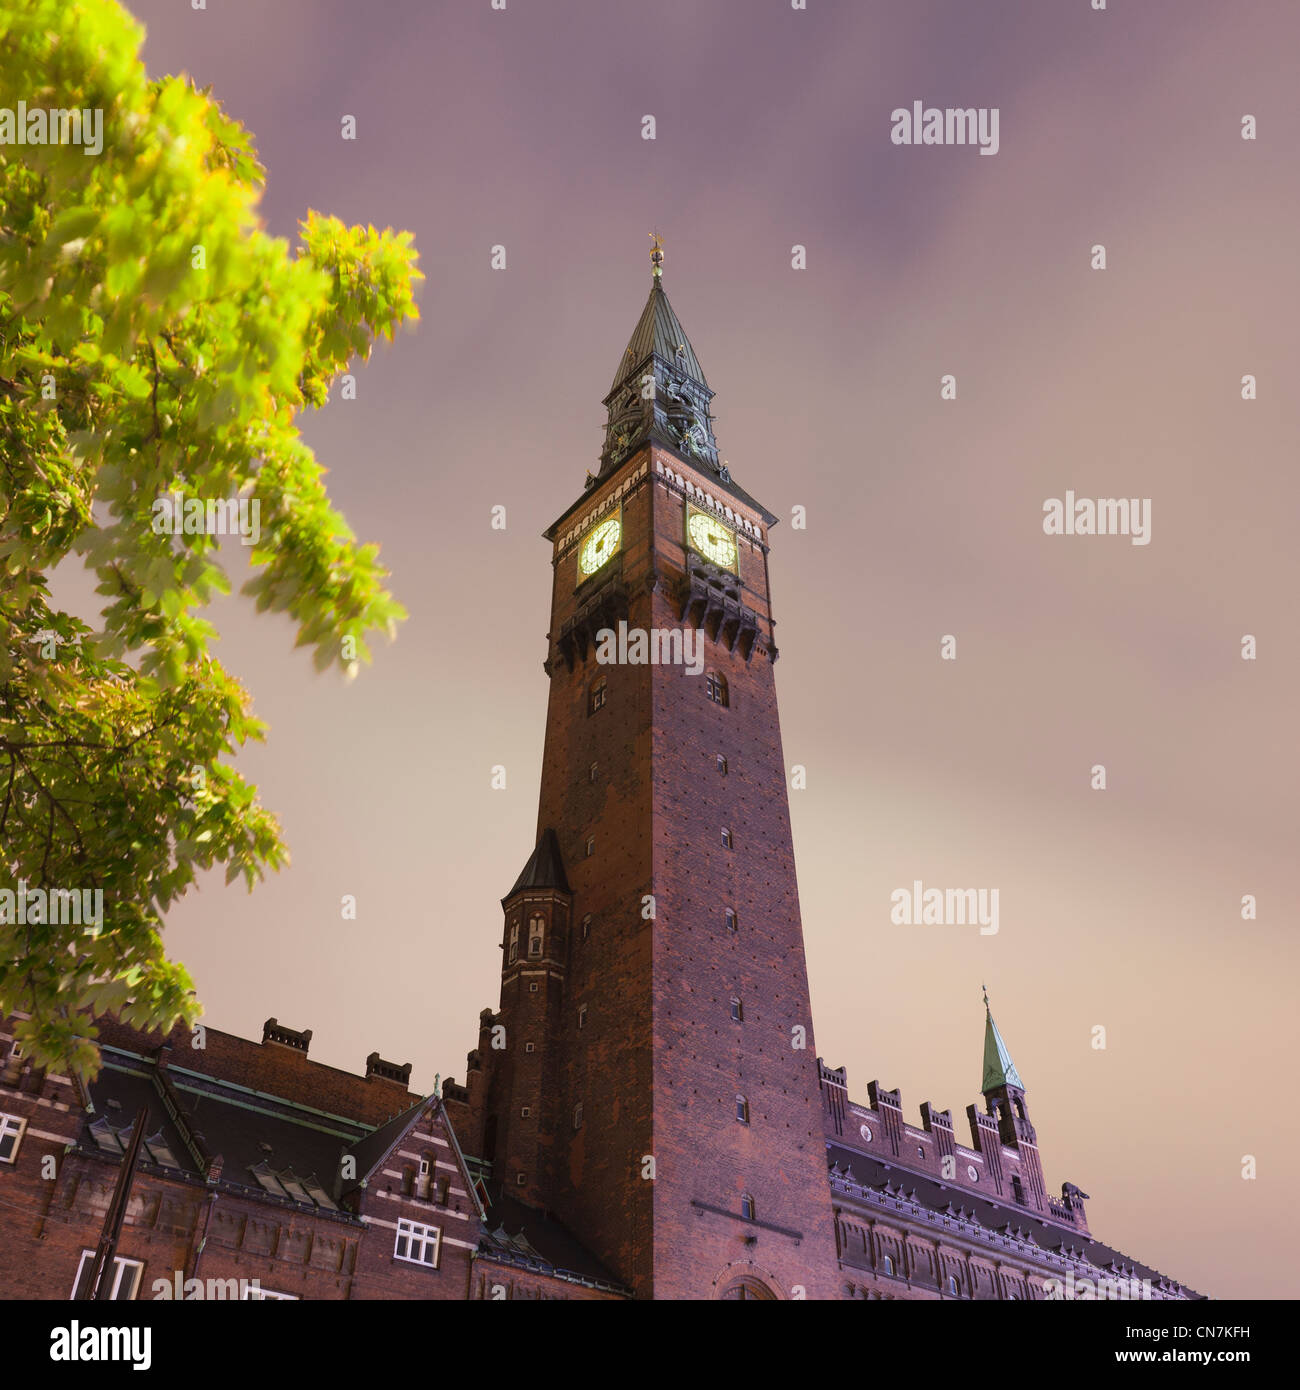 Clock Tower lit up at night Photo Stock